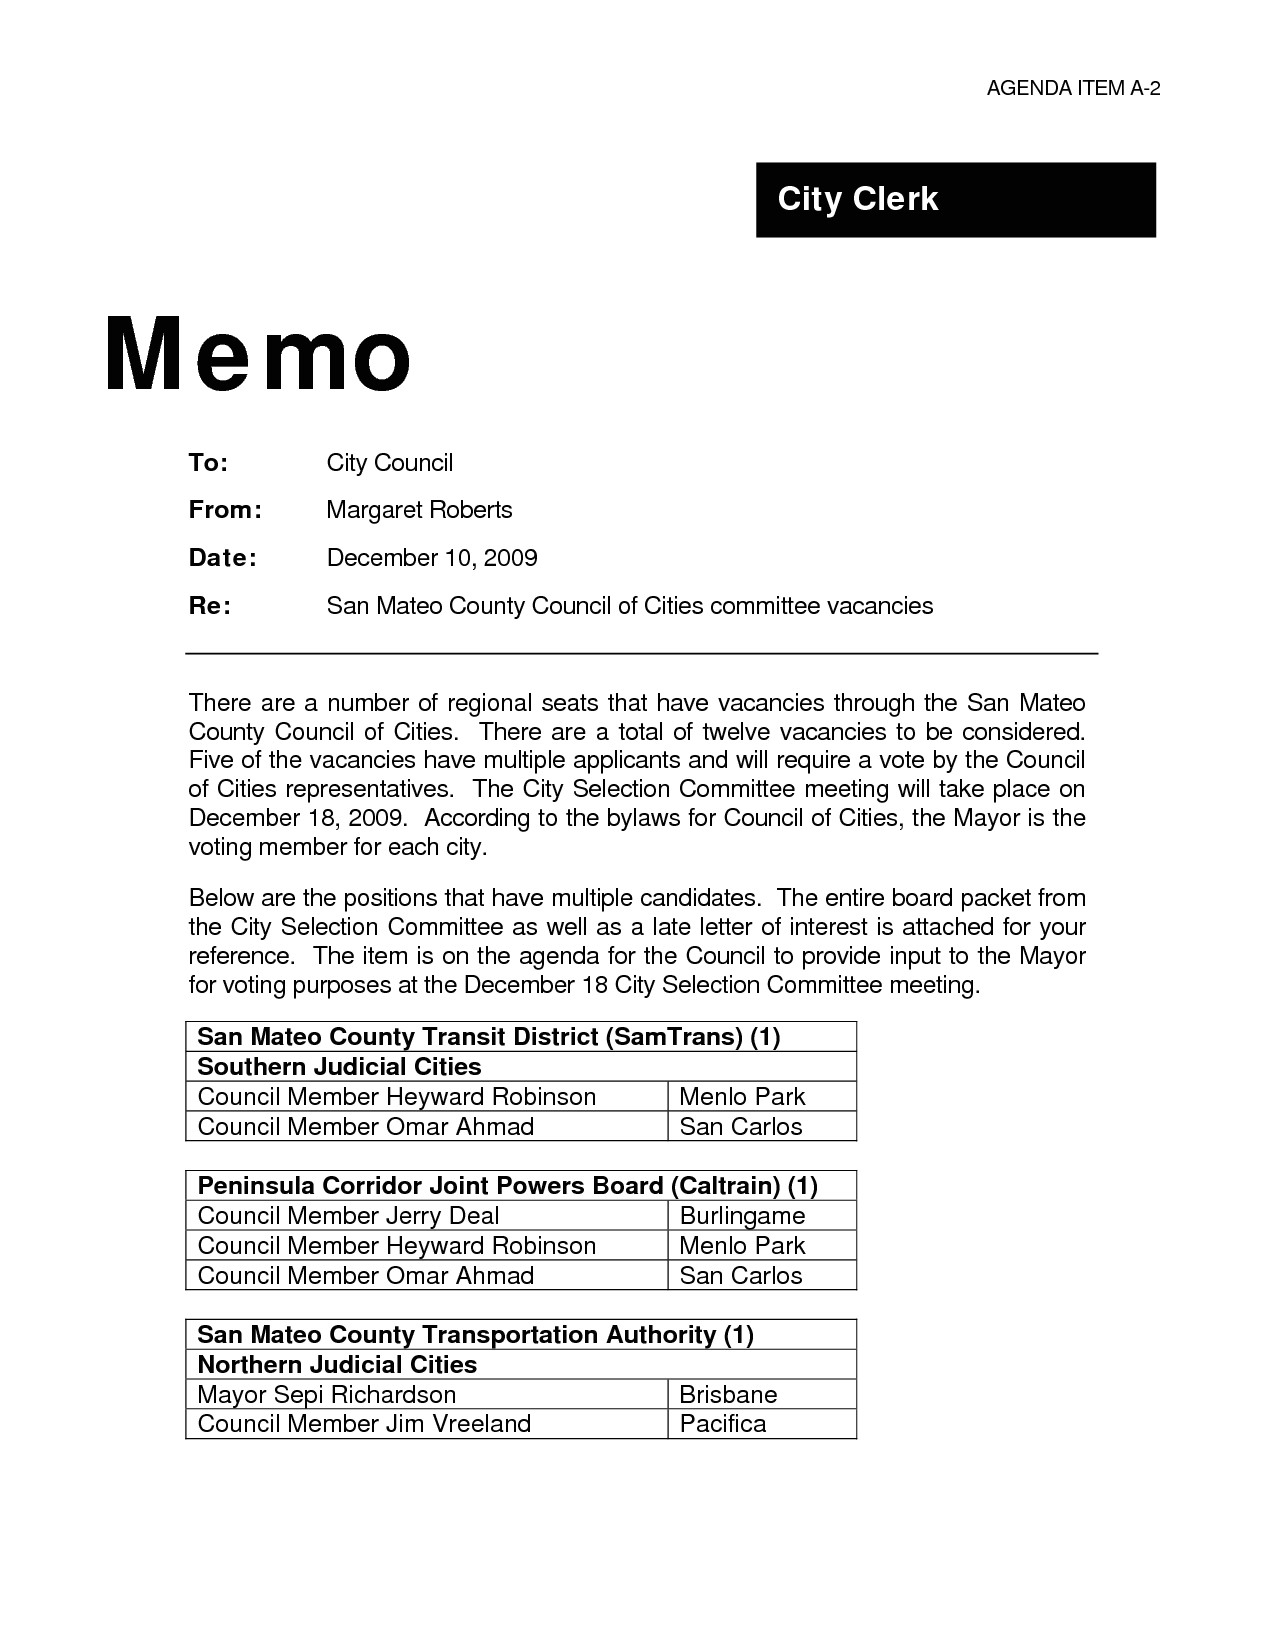 Template for Writing A Memo 9 Professional Memo Template Memo formats